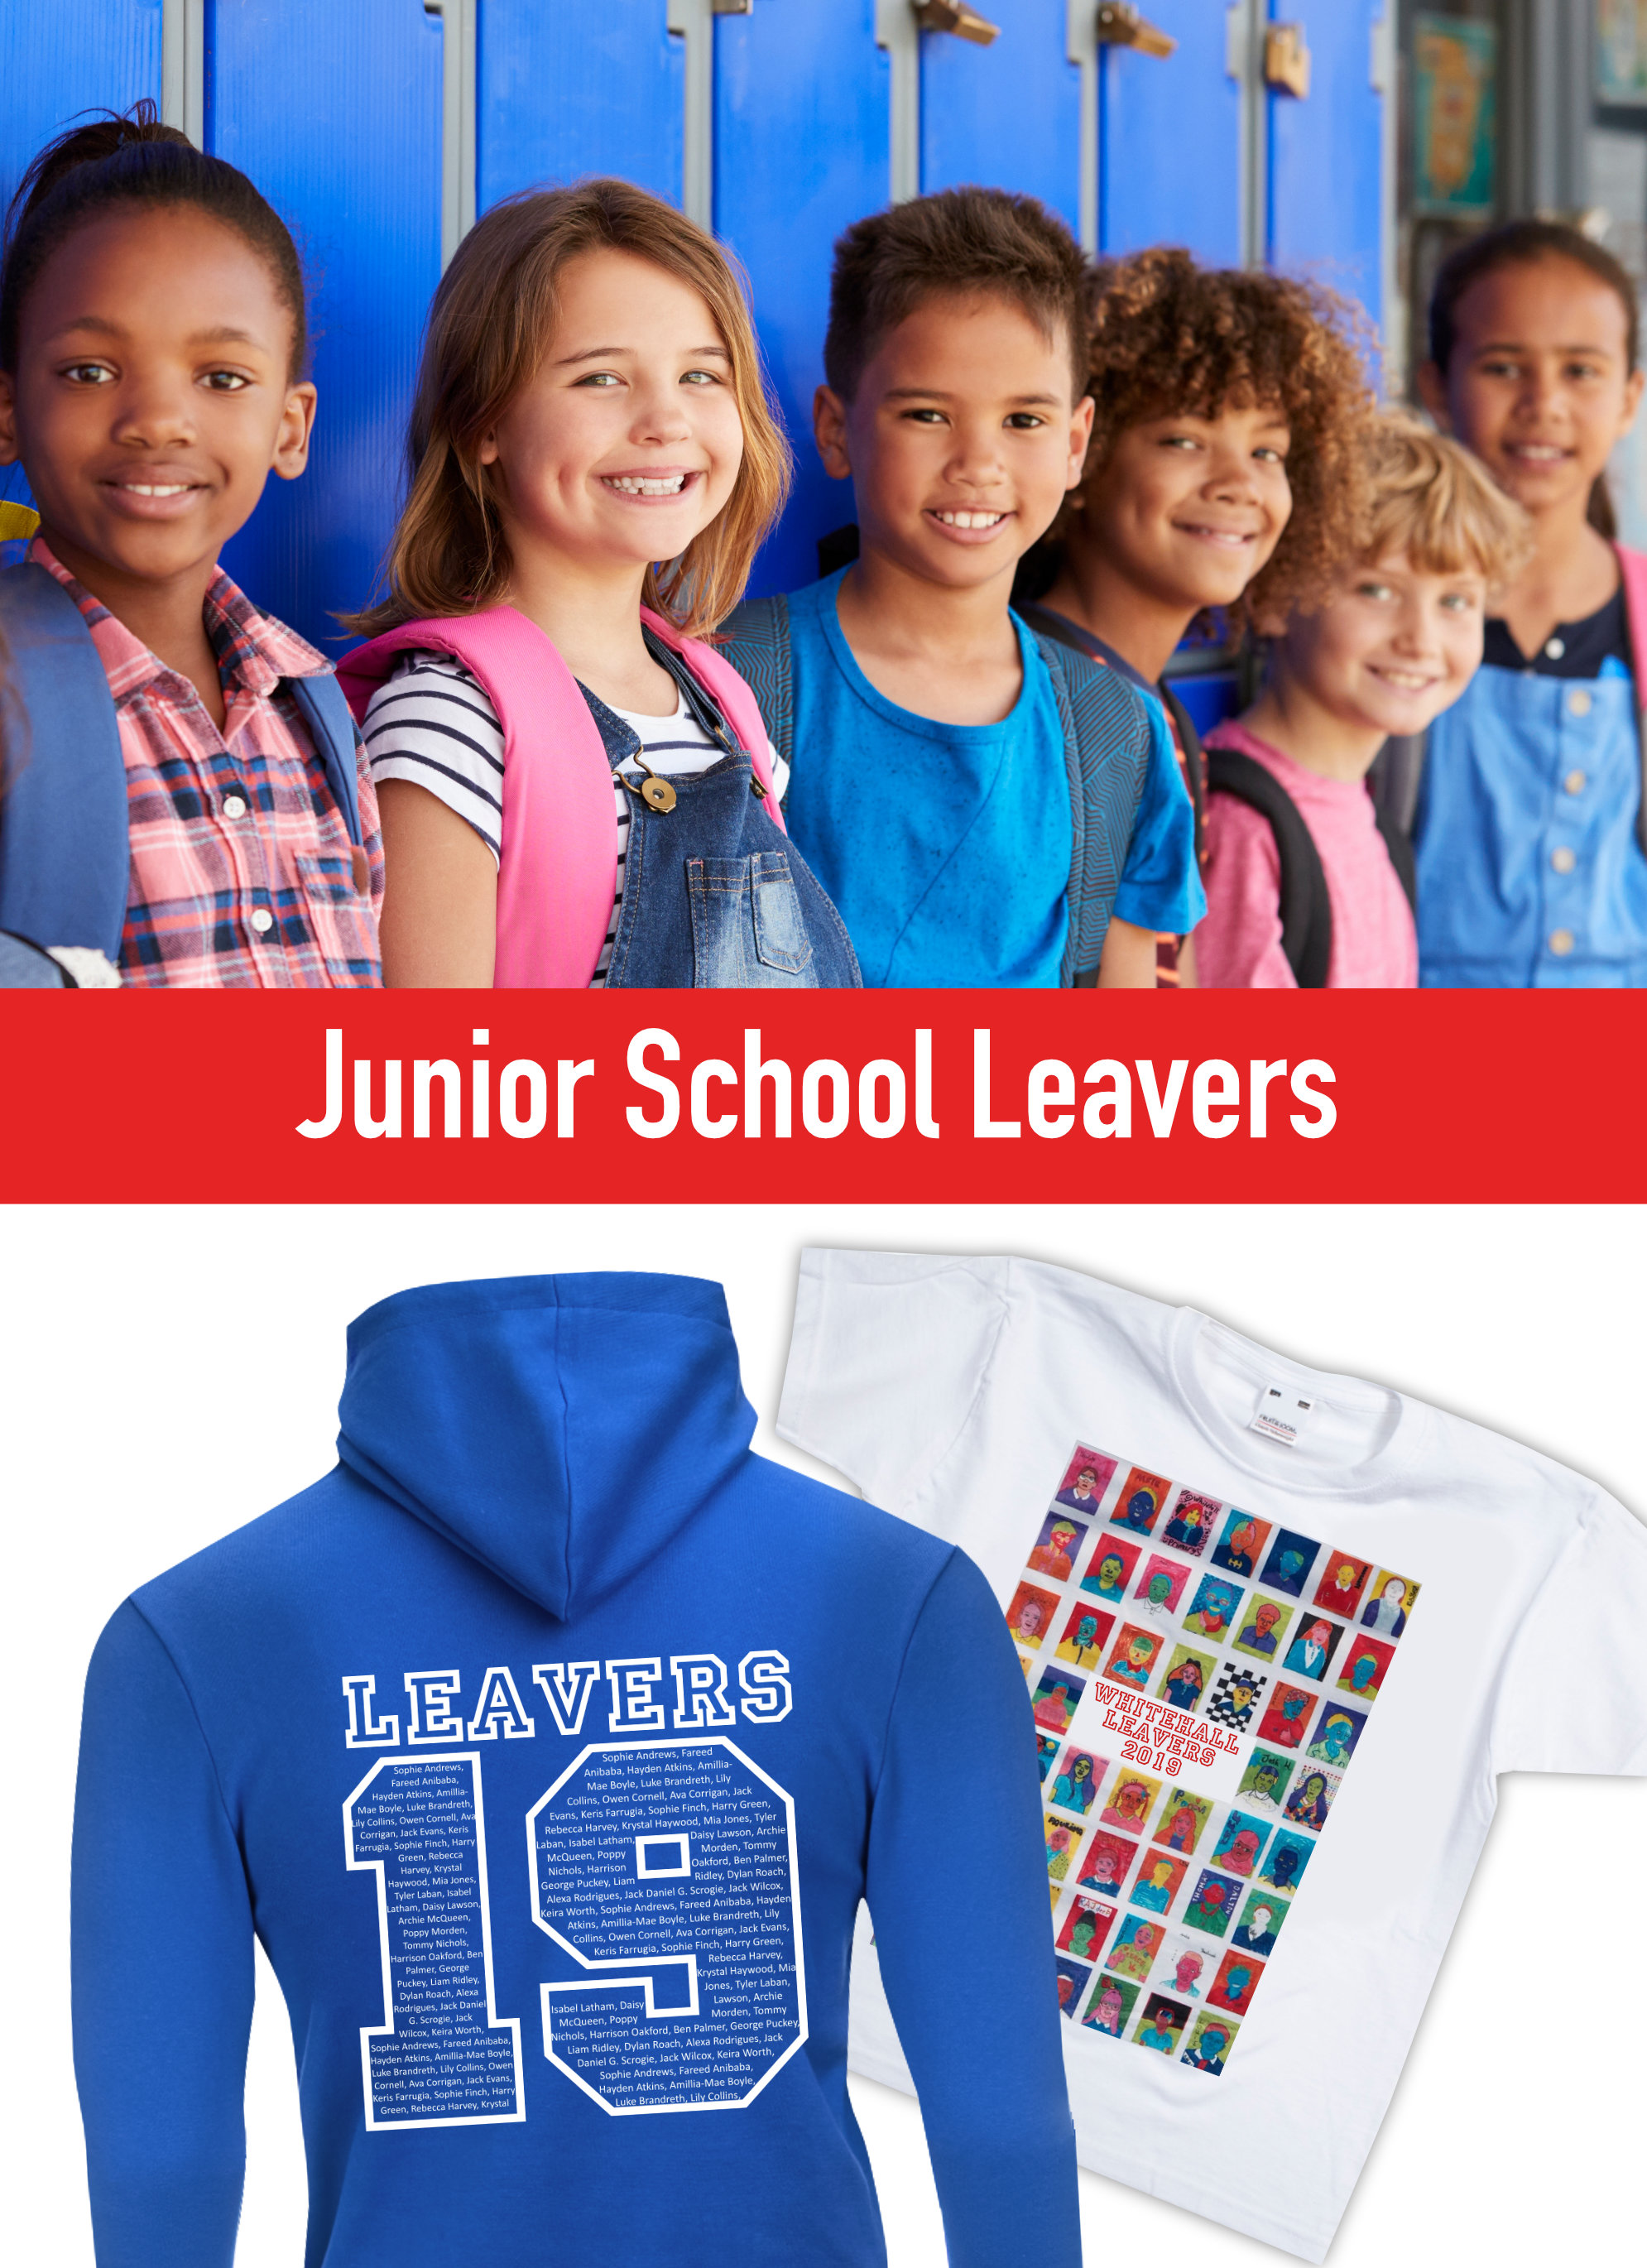 junior-school-leavers-gifts@2x.jpg